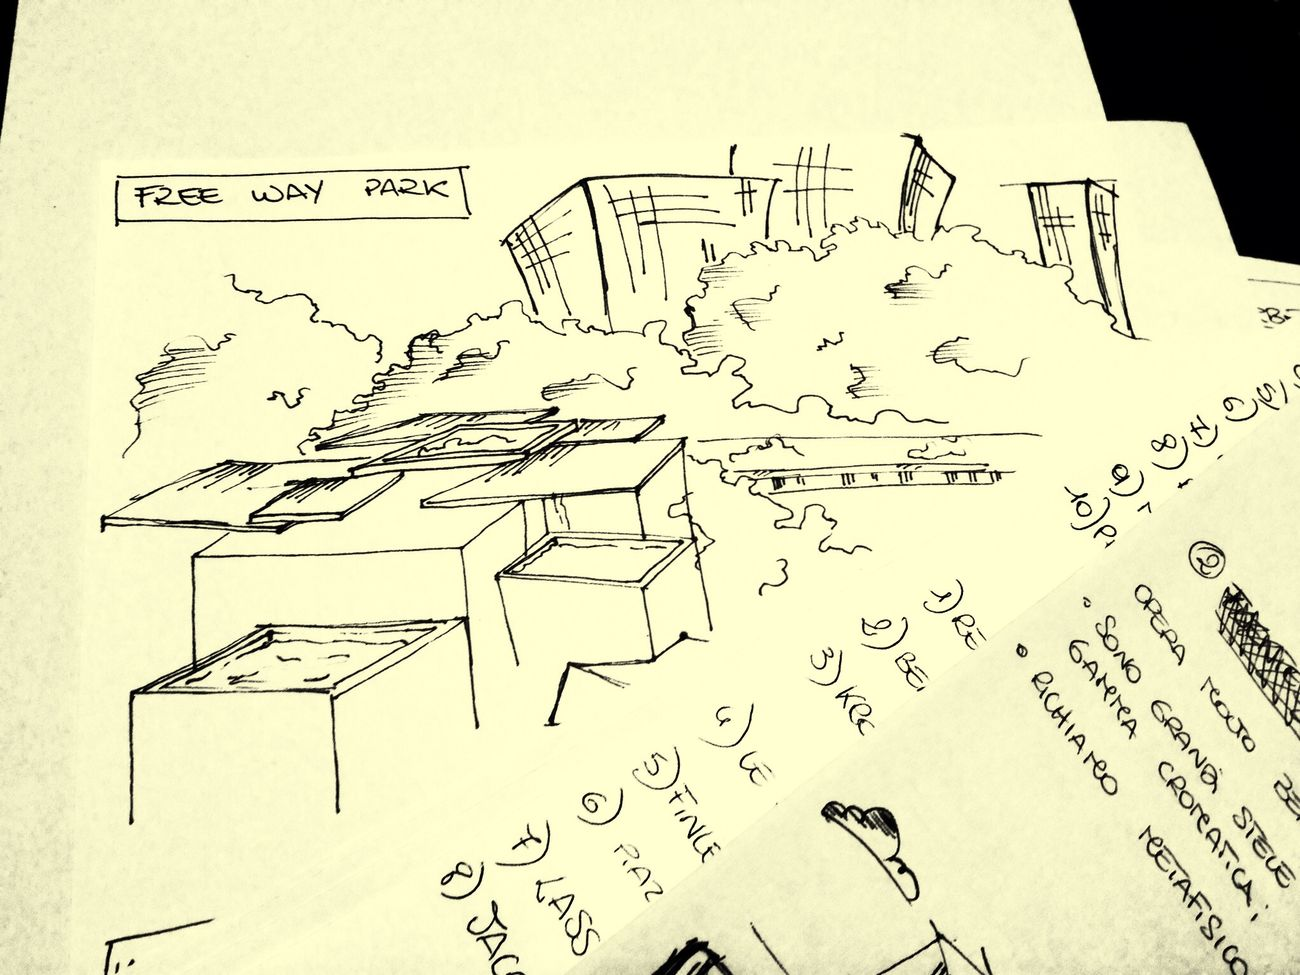 Scketch Freewaypark Appunti